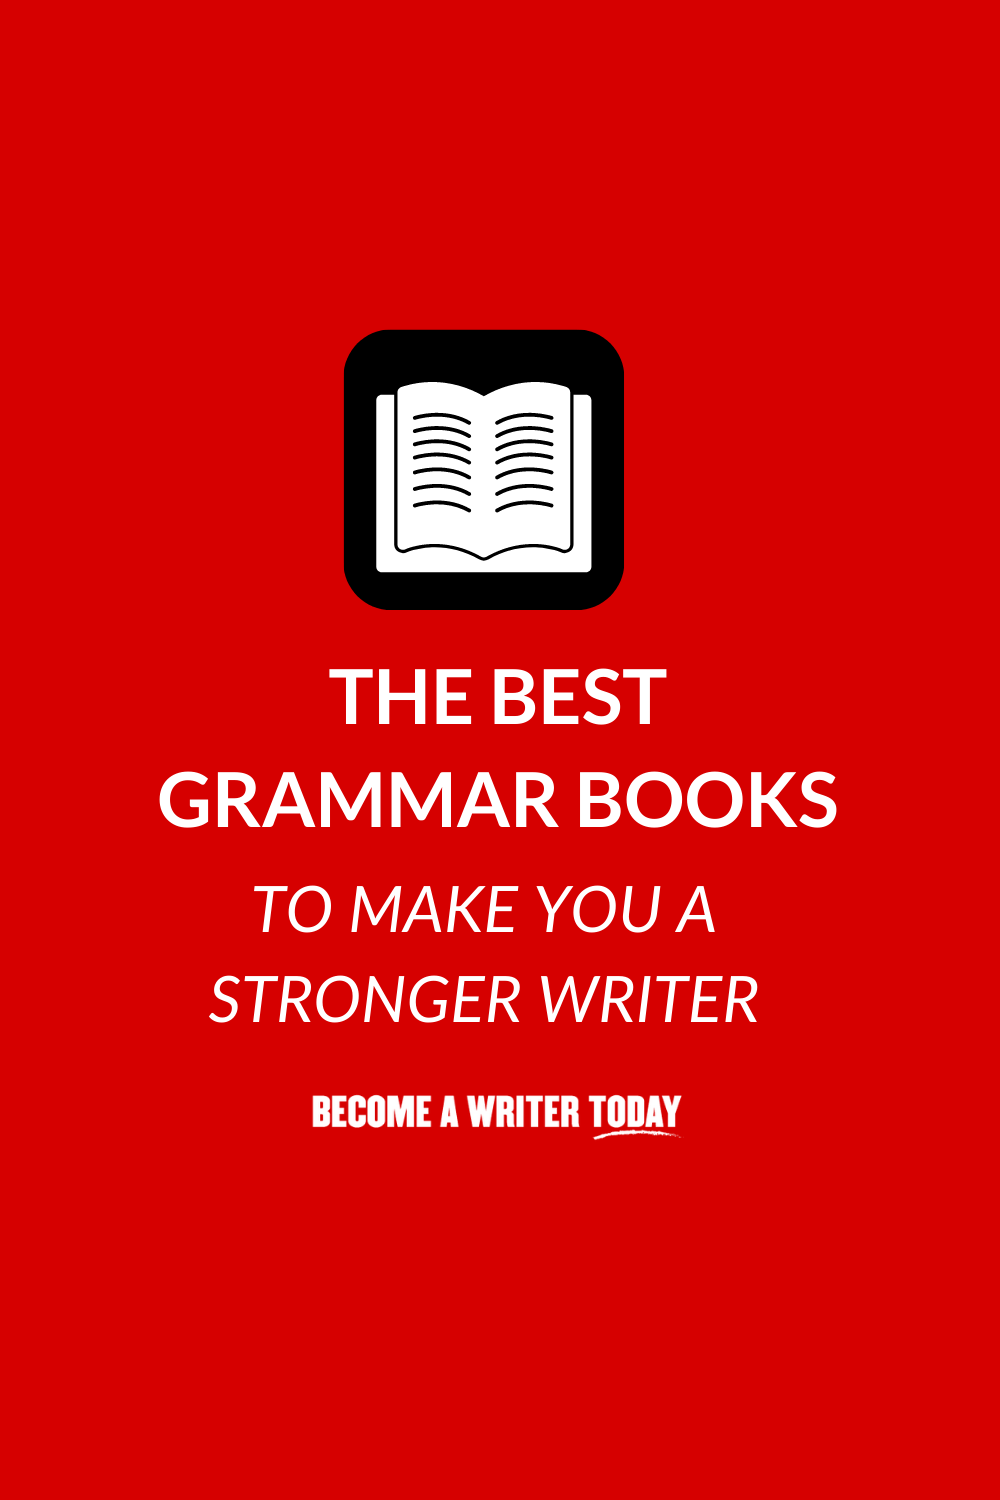 The 9 Best Grammar Books to Make You a Stronger Writer